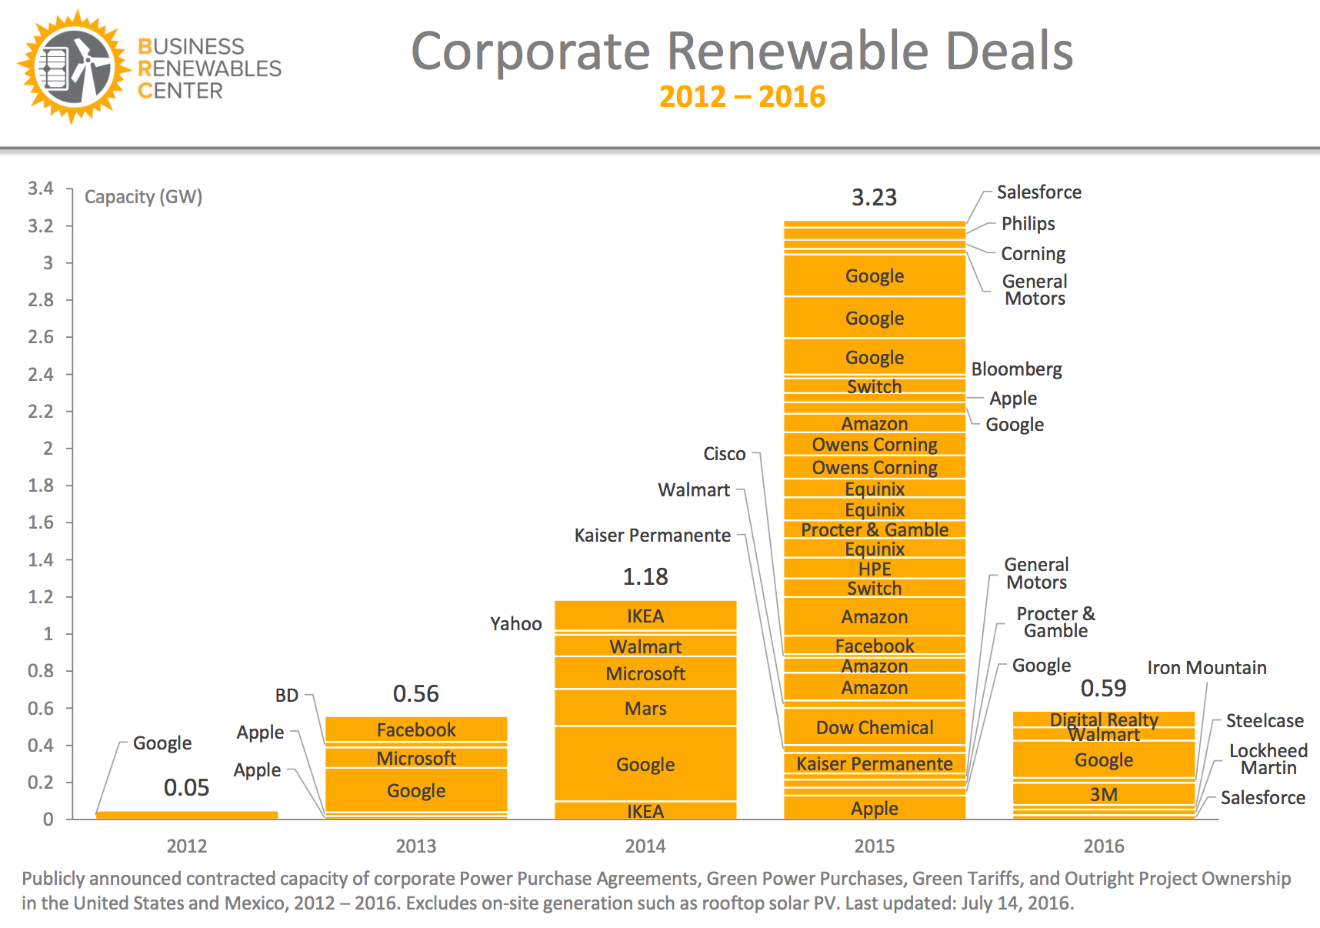 Corporate Renewable Energy Purchases